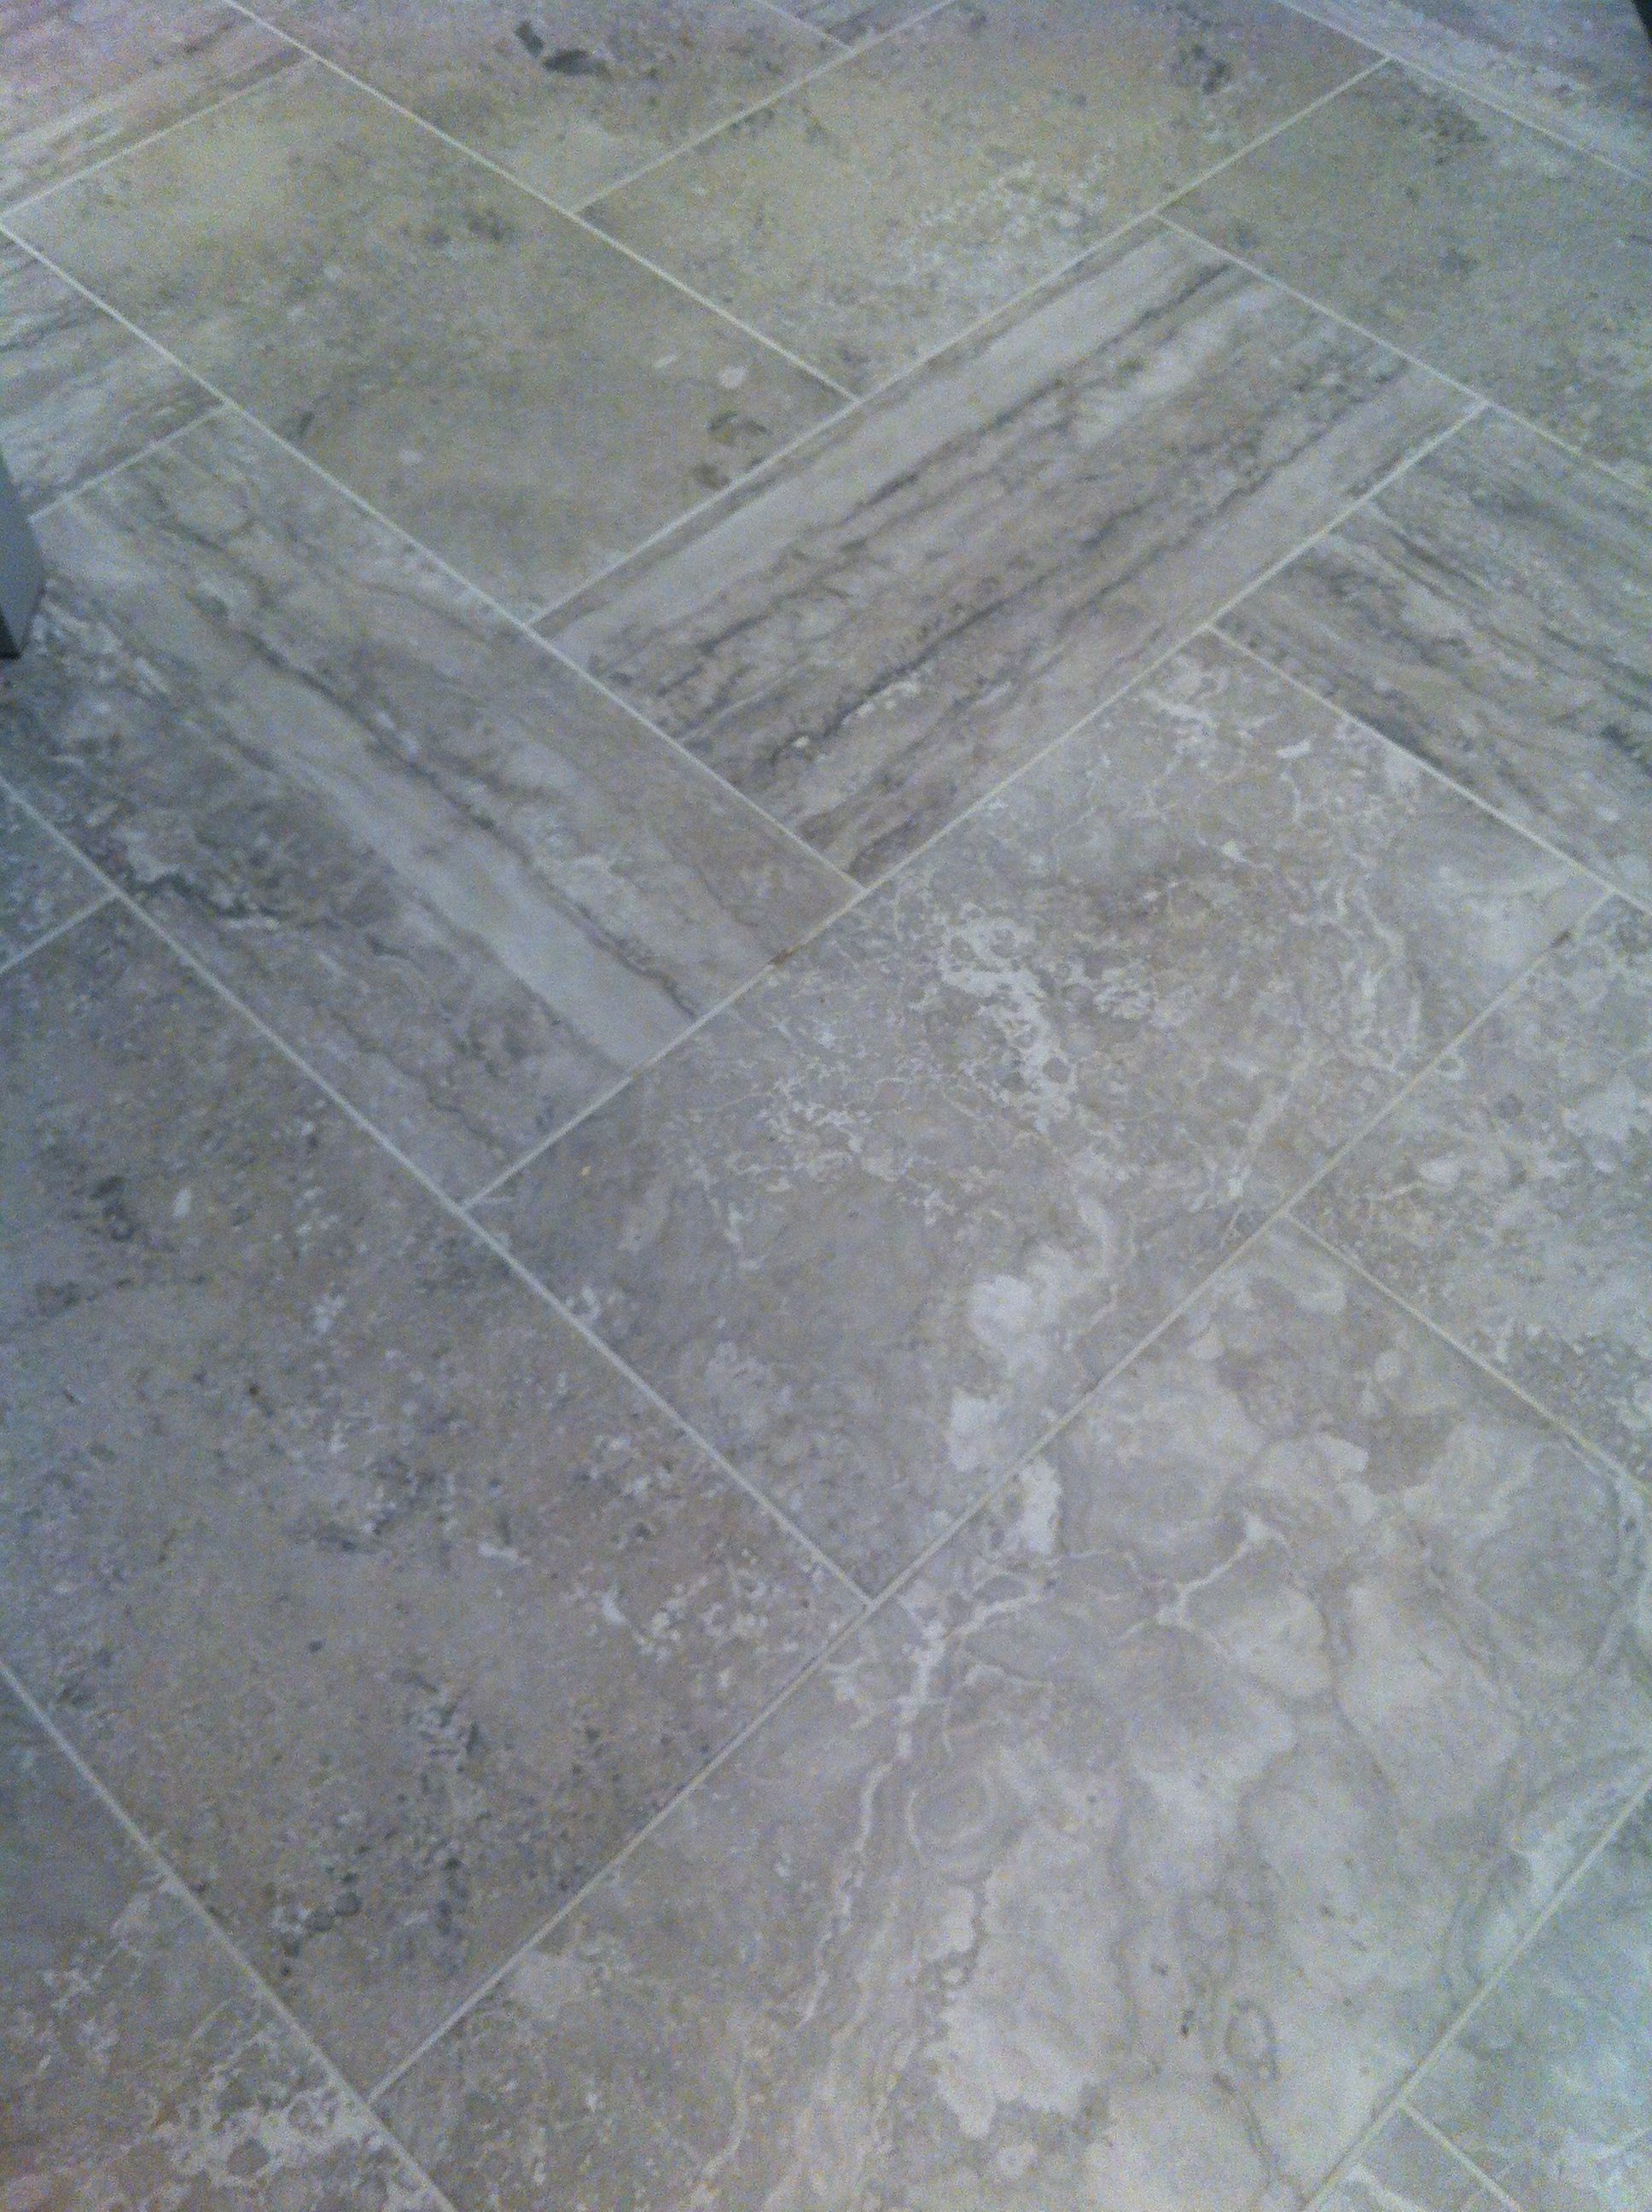 Daltile exquisite in chantilly 12 x 24 eq11 as seen on for Daltile bathroom tile designs